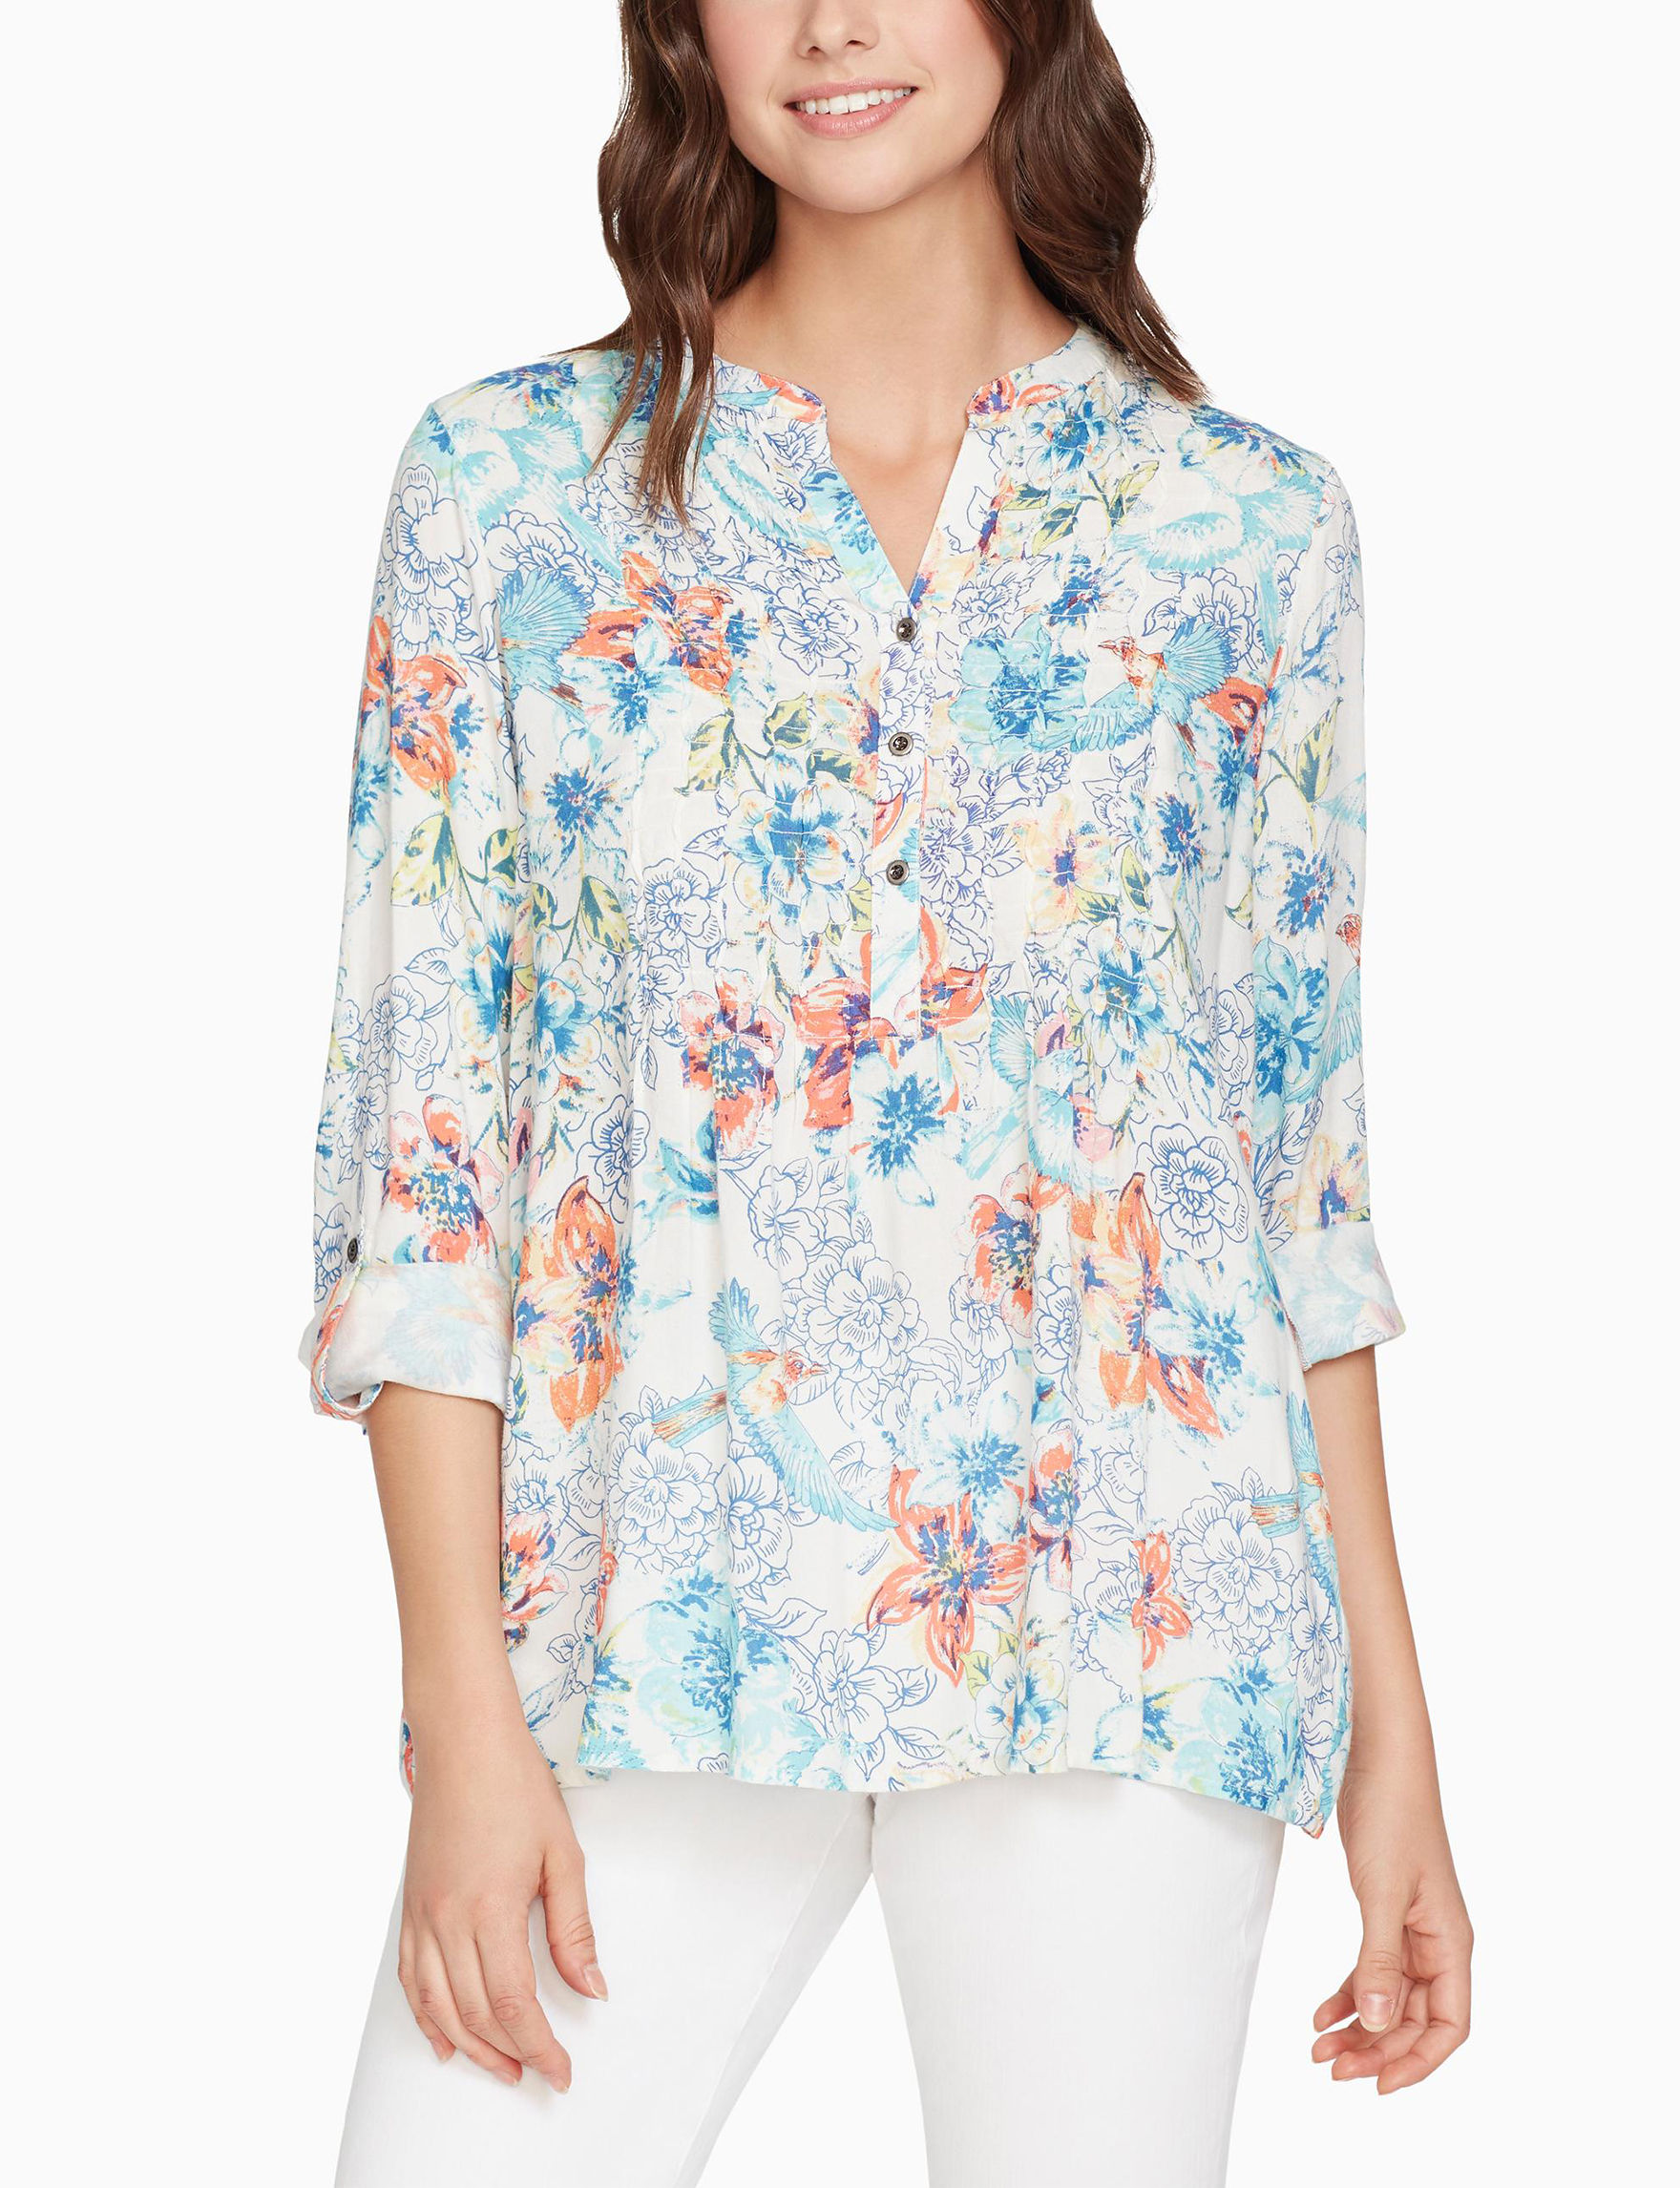 Nine West White Floral Shirts & Blouses